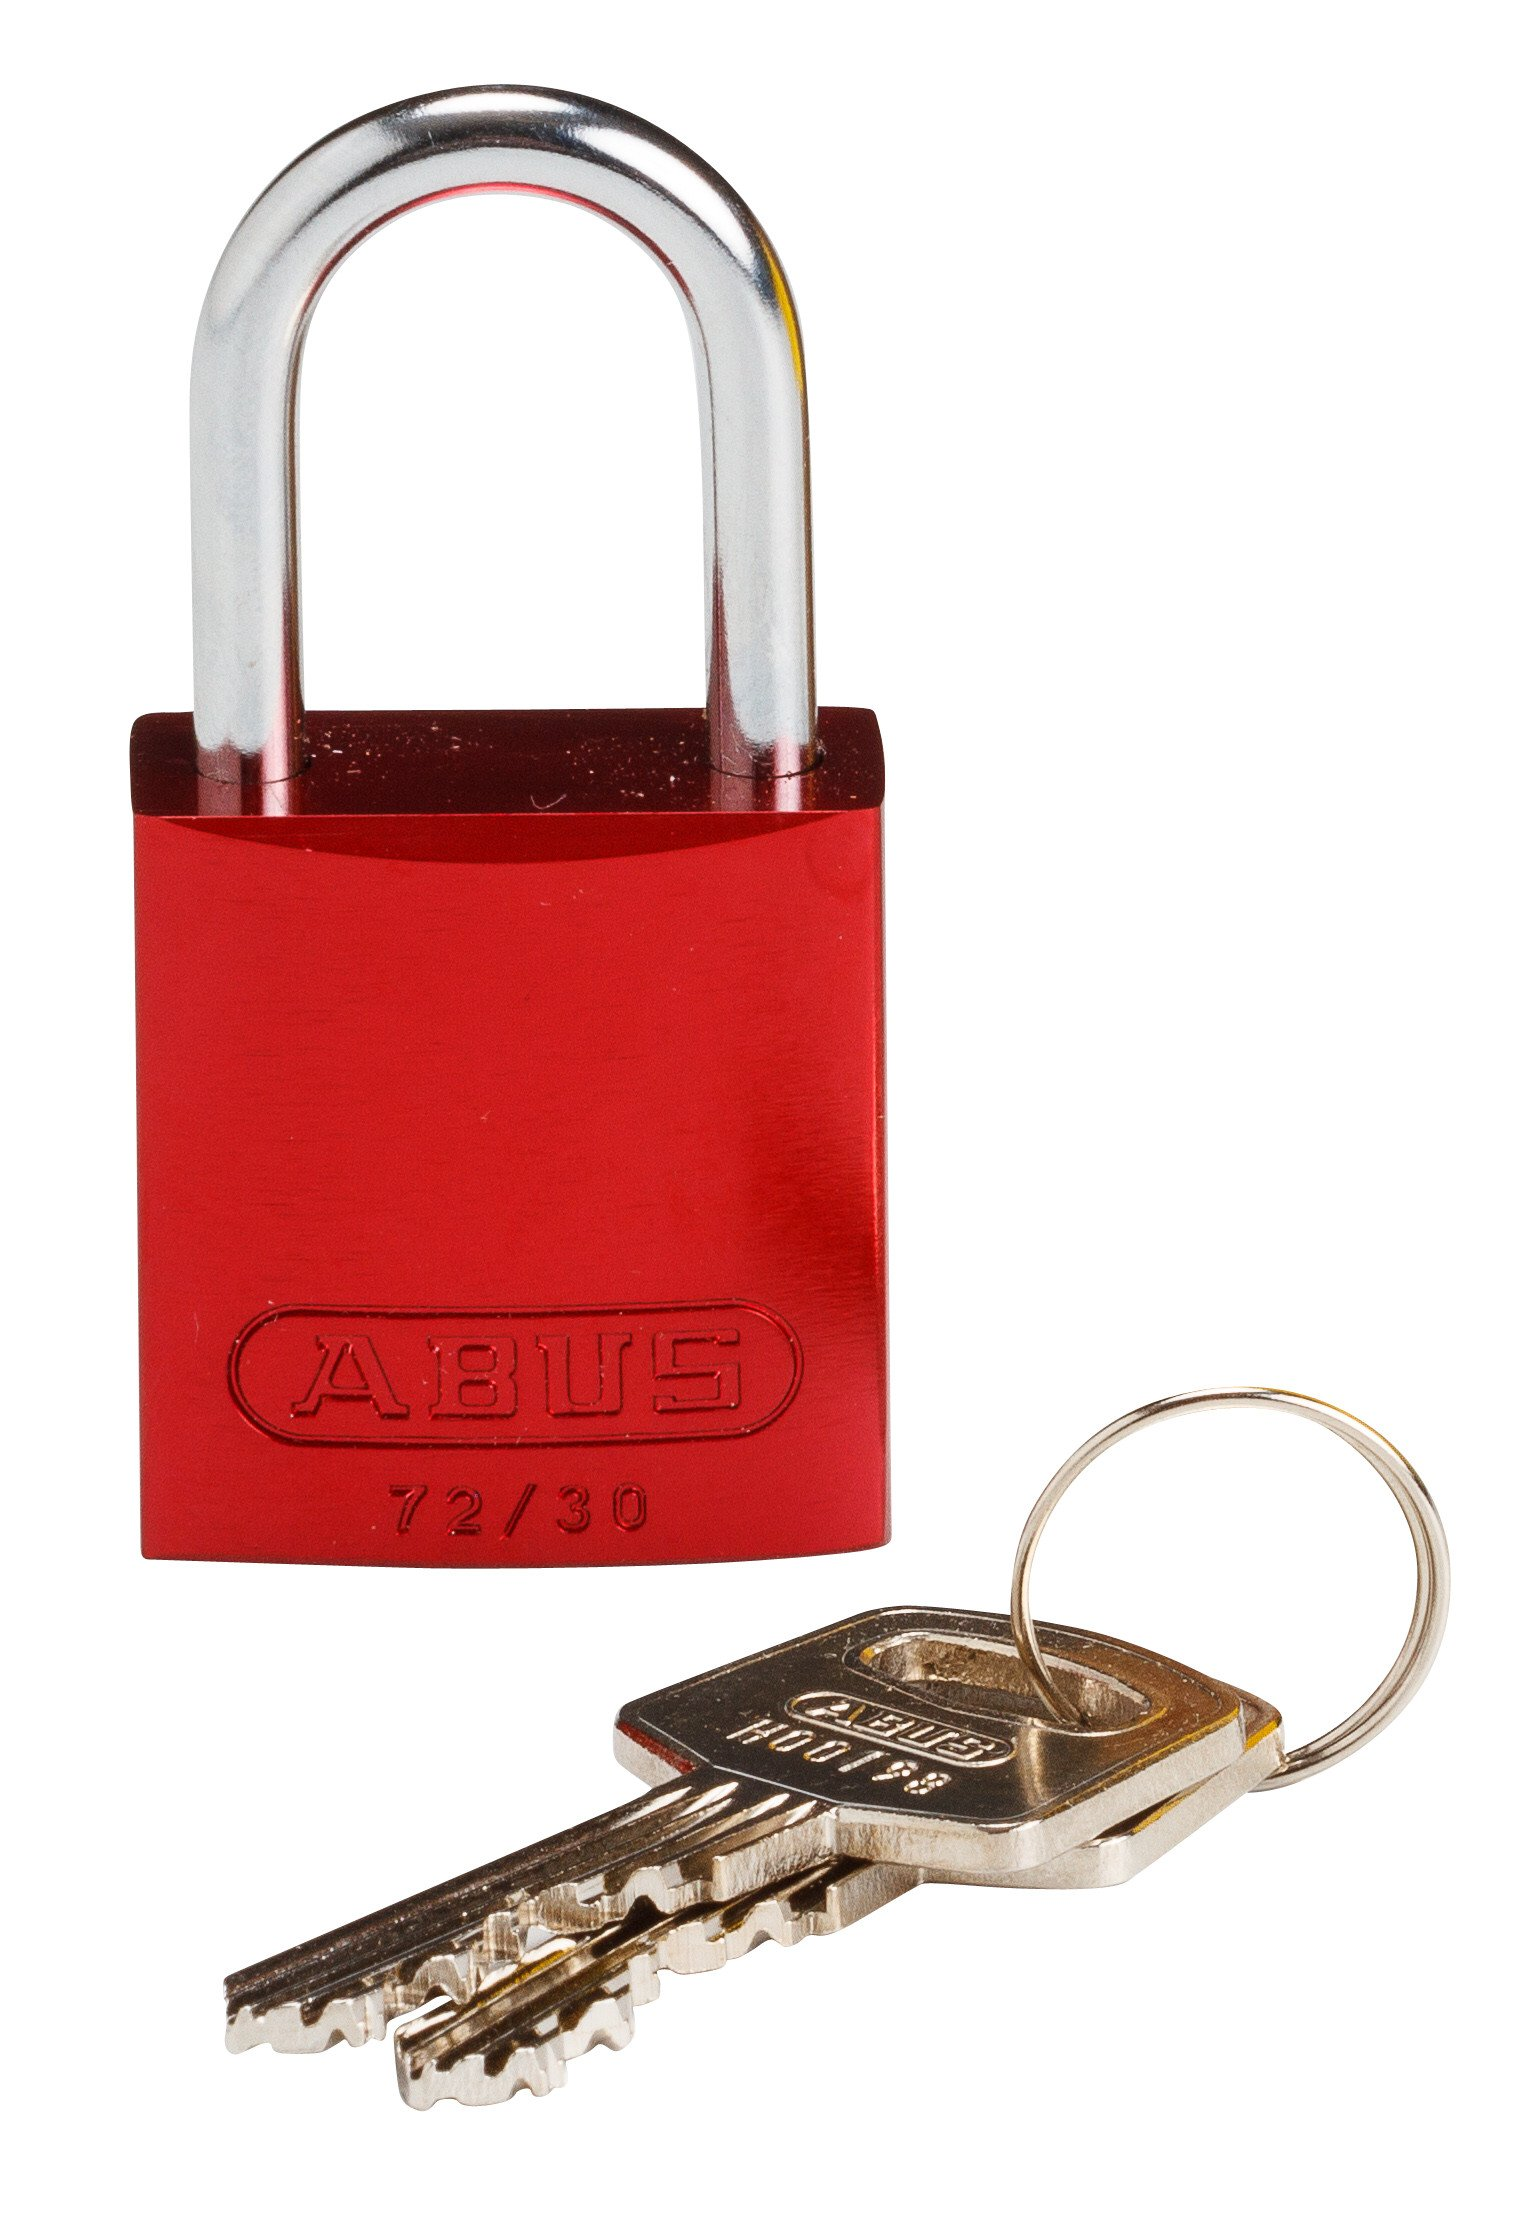 Brady 133270 Keyed Padlock, Different Key, Aluminum (Pack of 1)